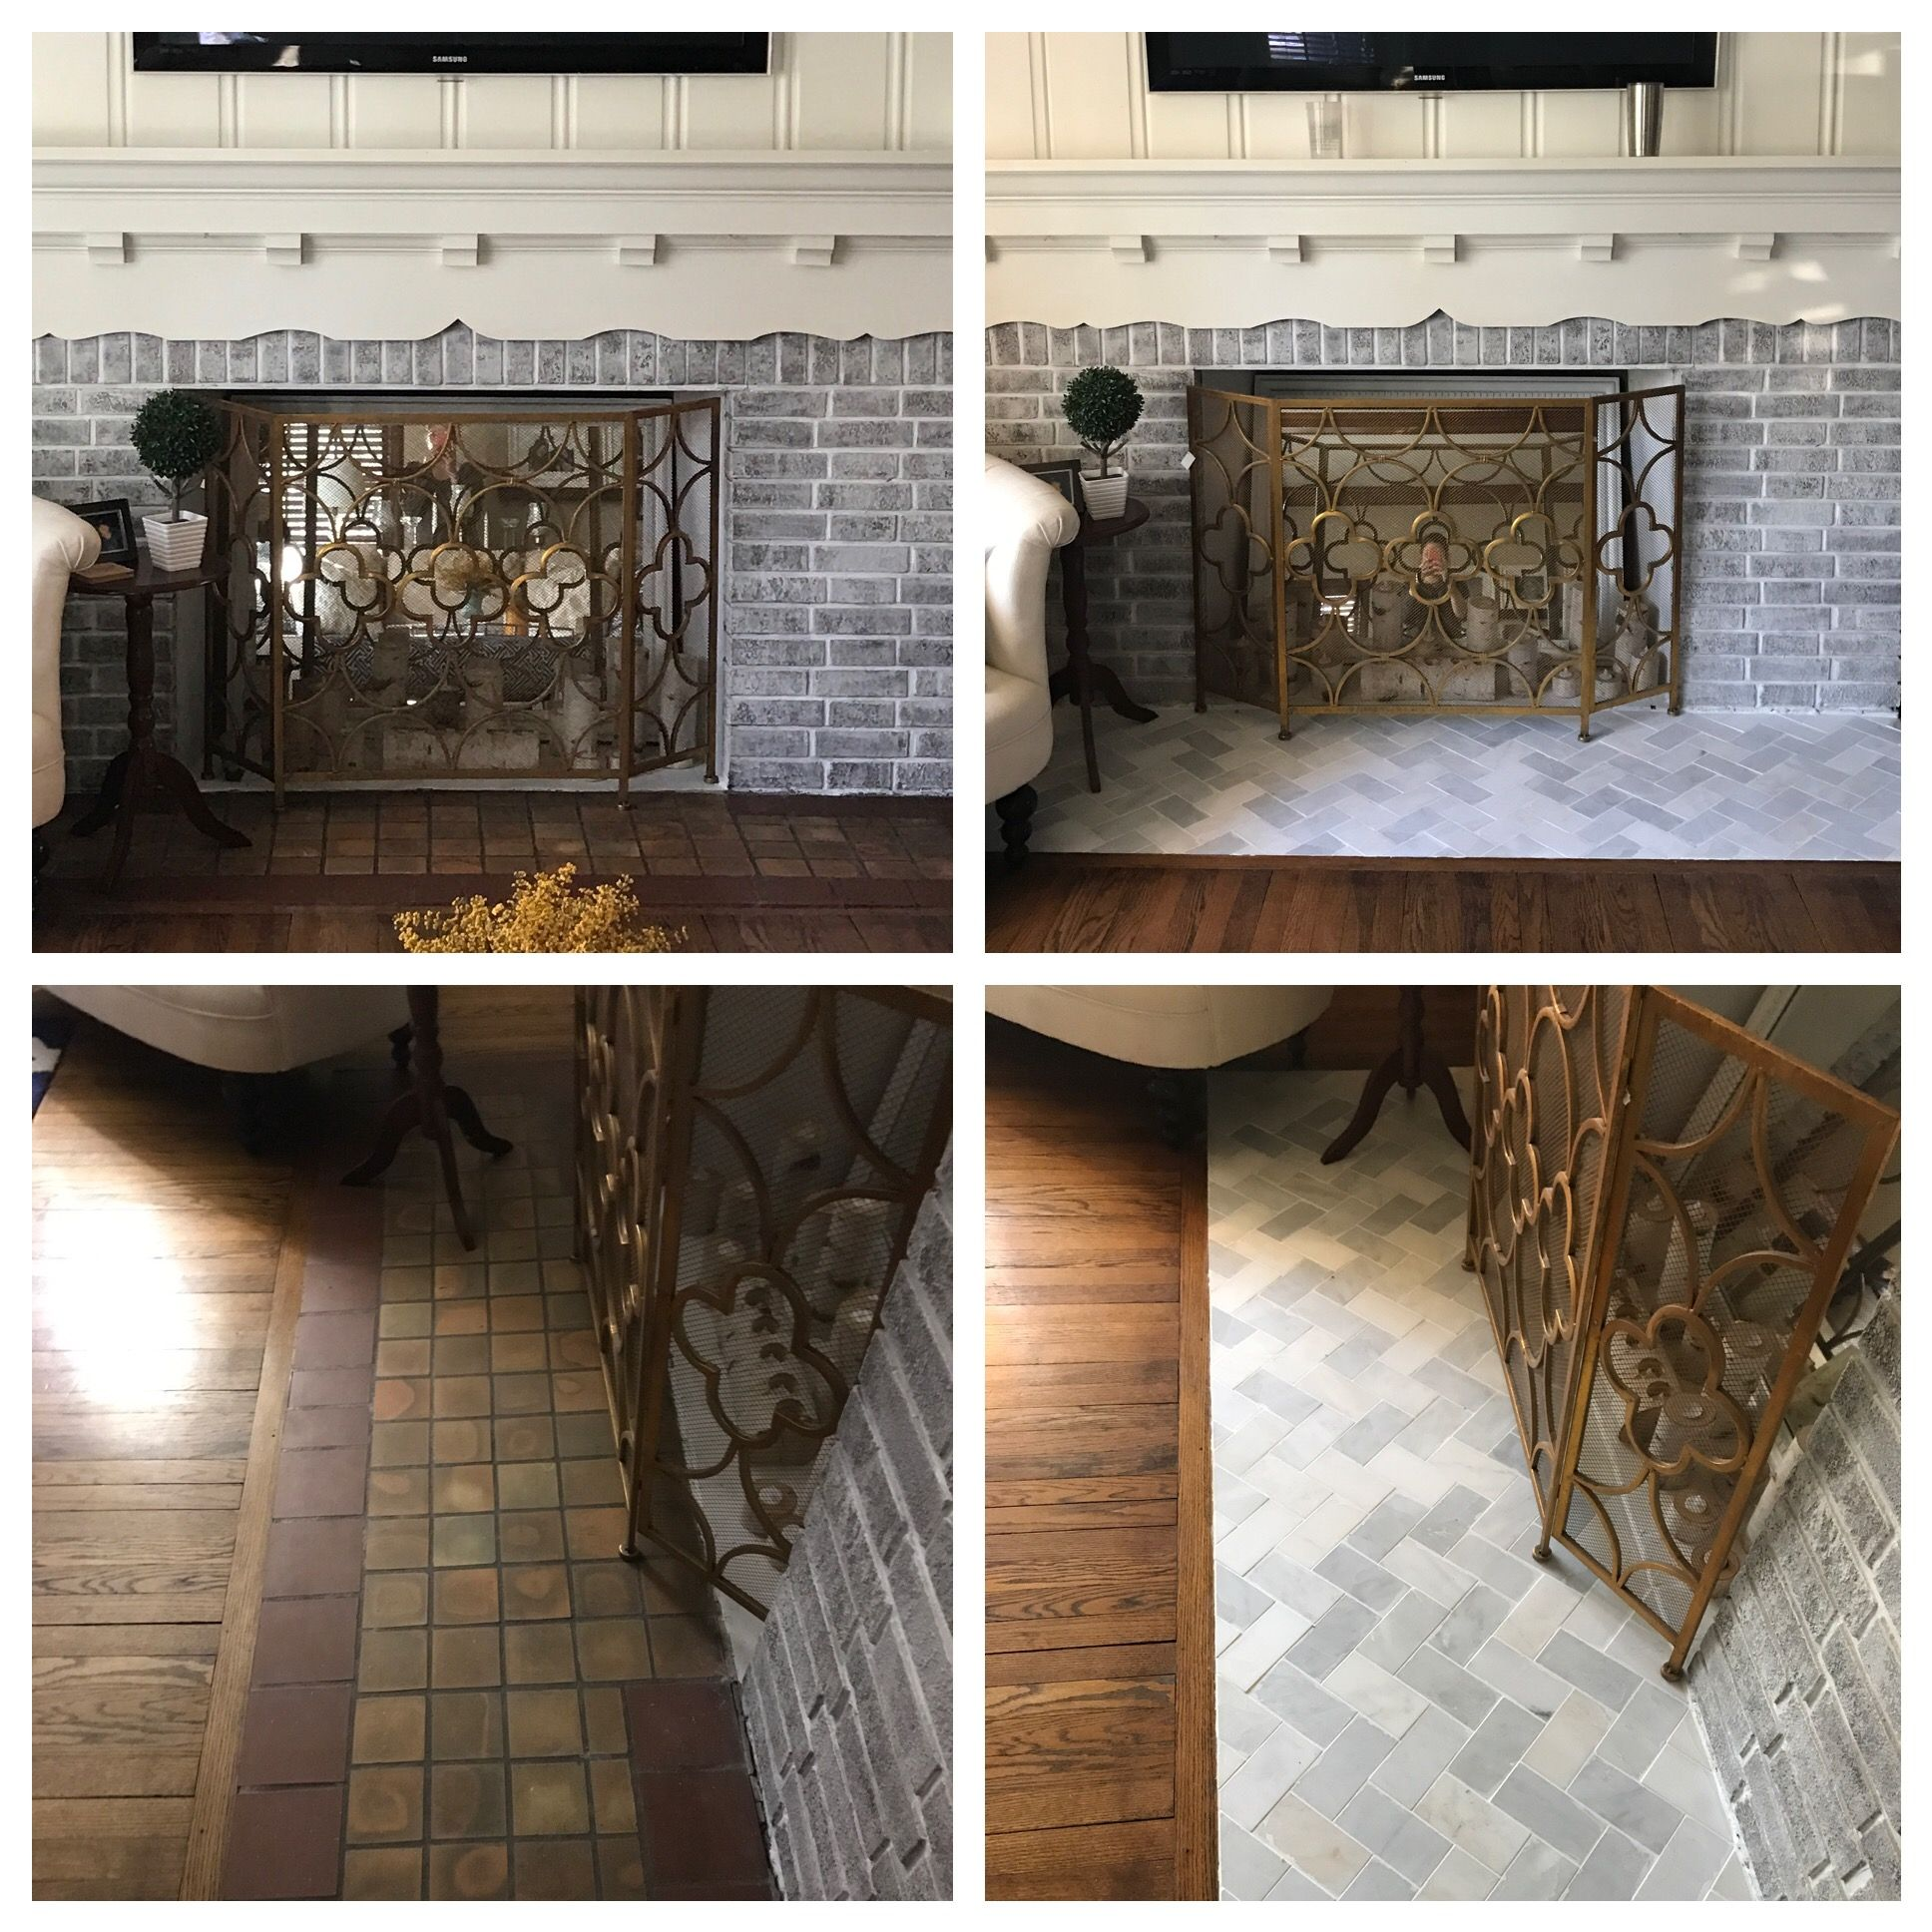 Fireplace floor tile before and after white grecian tile from fireplace floor tile before and after white grecian tile from home depot laid in herringbone dailygadgetfo Choice Image